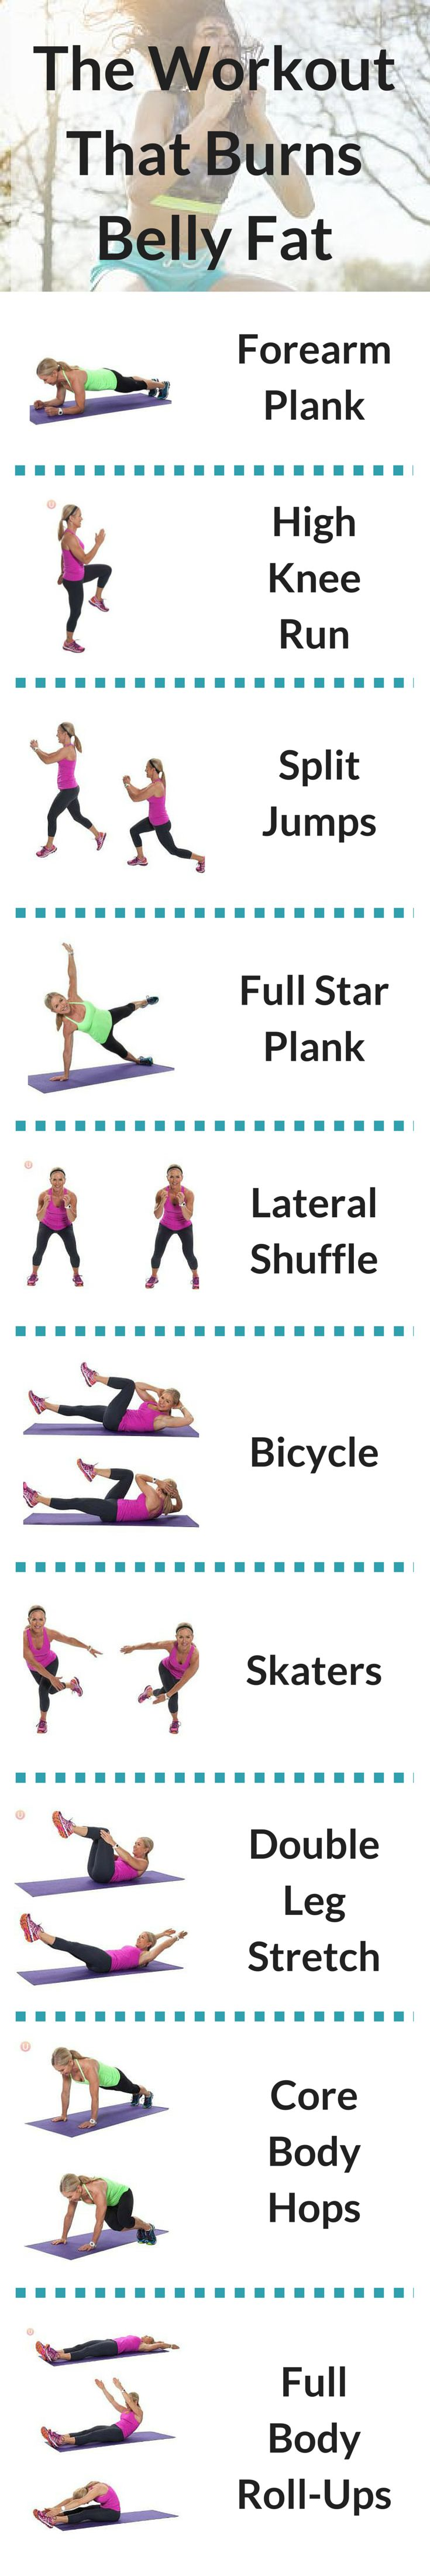 Beyond the vanity of it all, it's important to get rid of belly fat for a healthier you. Thus, this workout that burns belly fat was born!